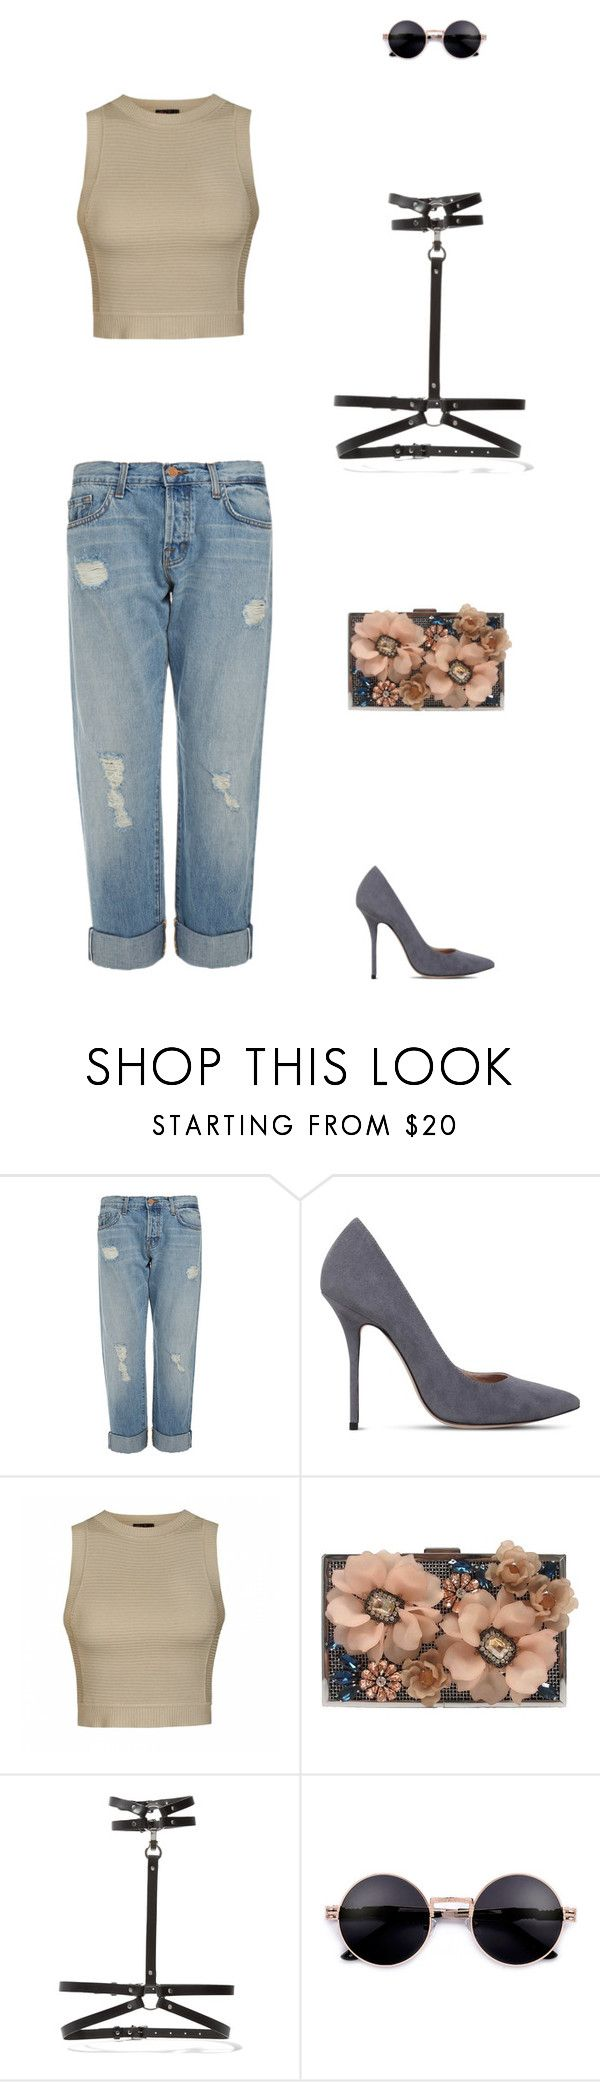 """""""Grad Party Outfit"""" by lstar237 on Polyvore featuring J Brand, Kurt Geiger, Ally Fashion, Sondra Roberts and Zana Bayne"""